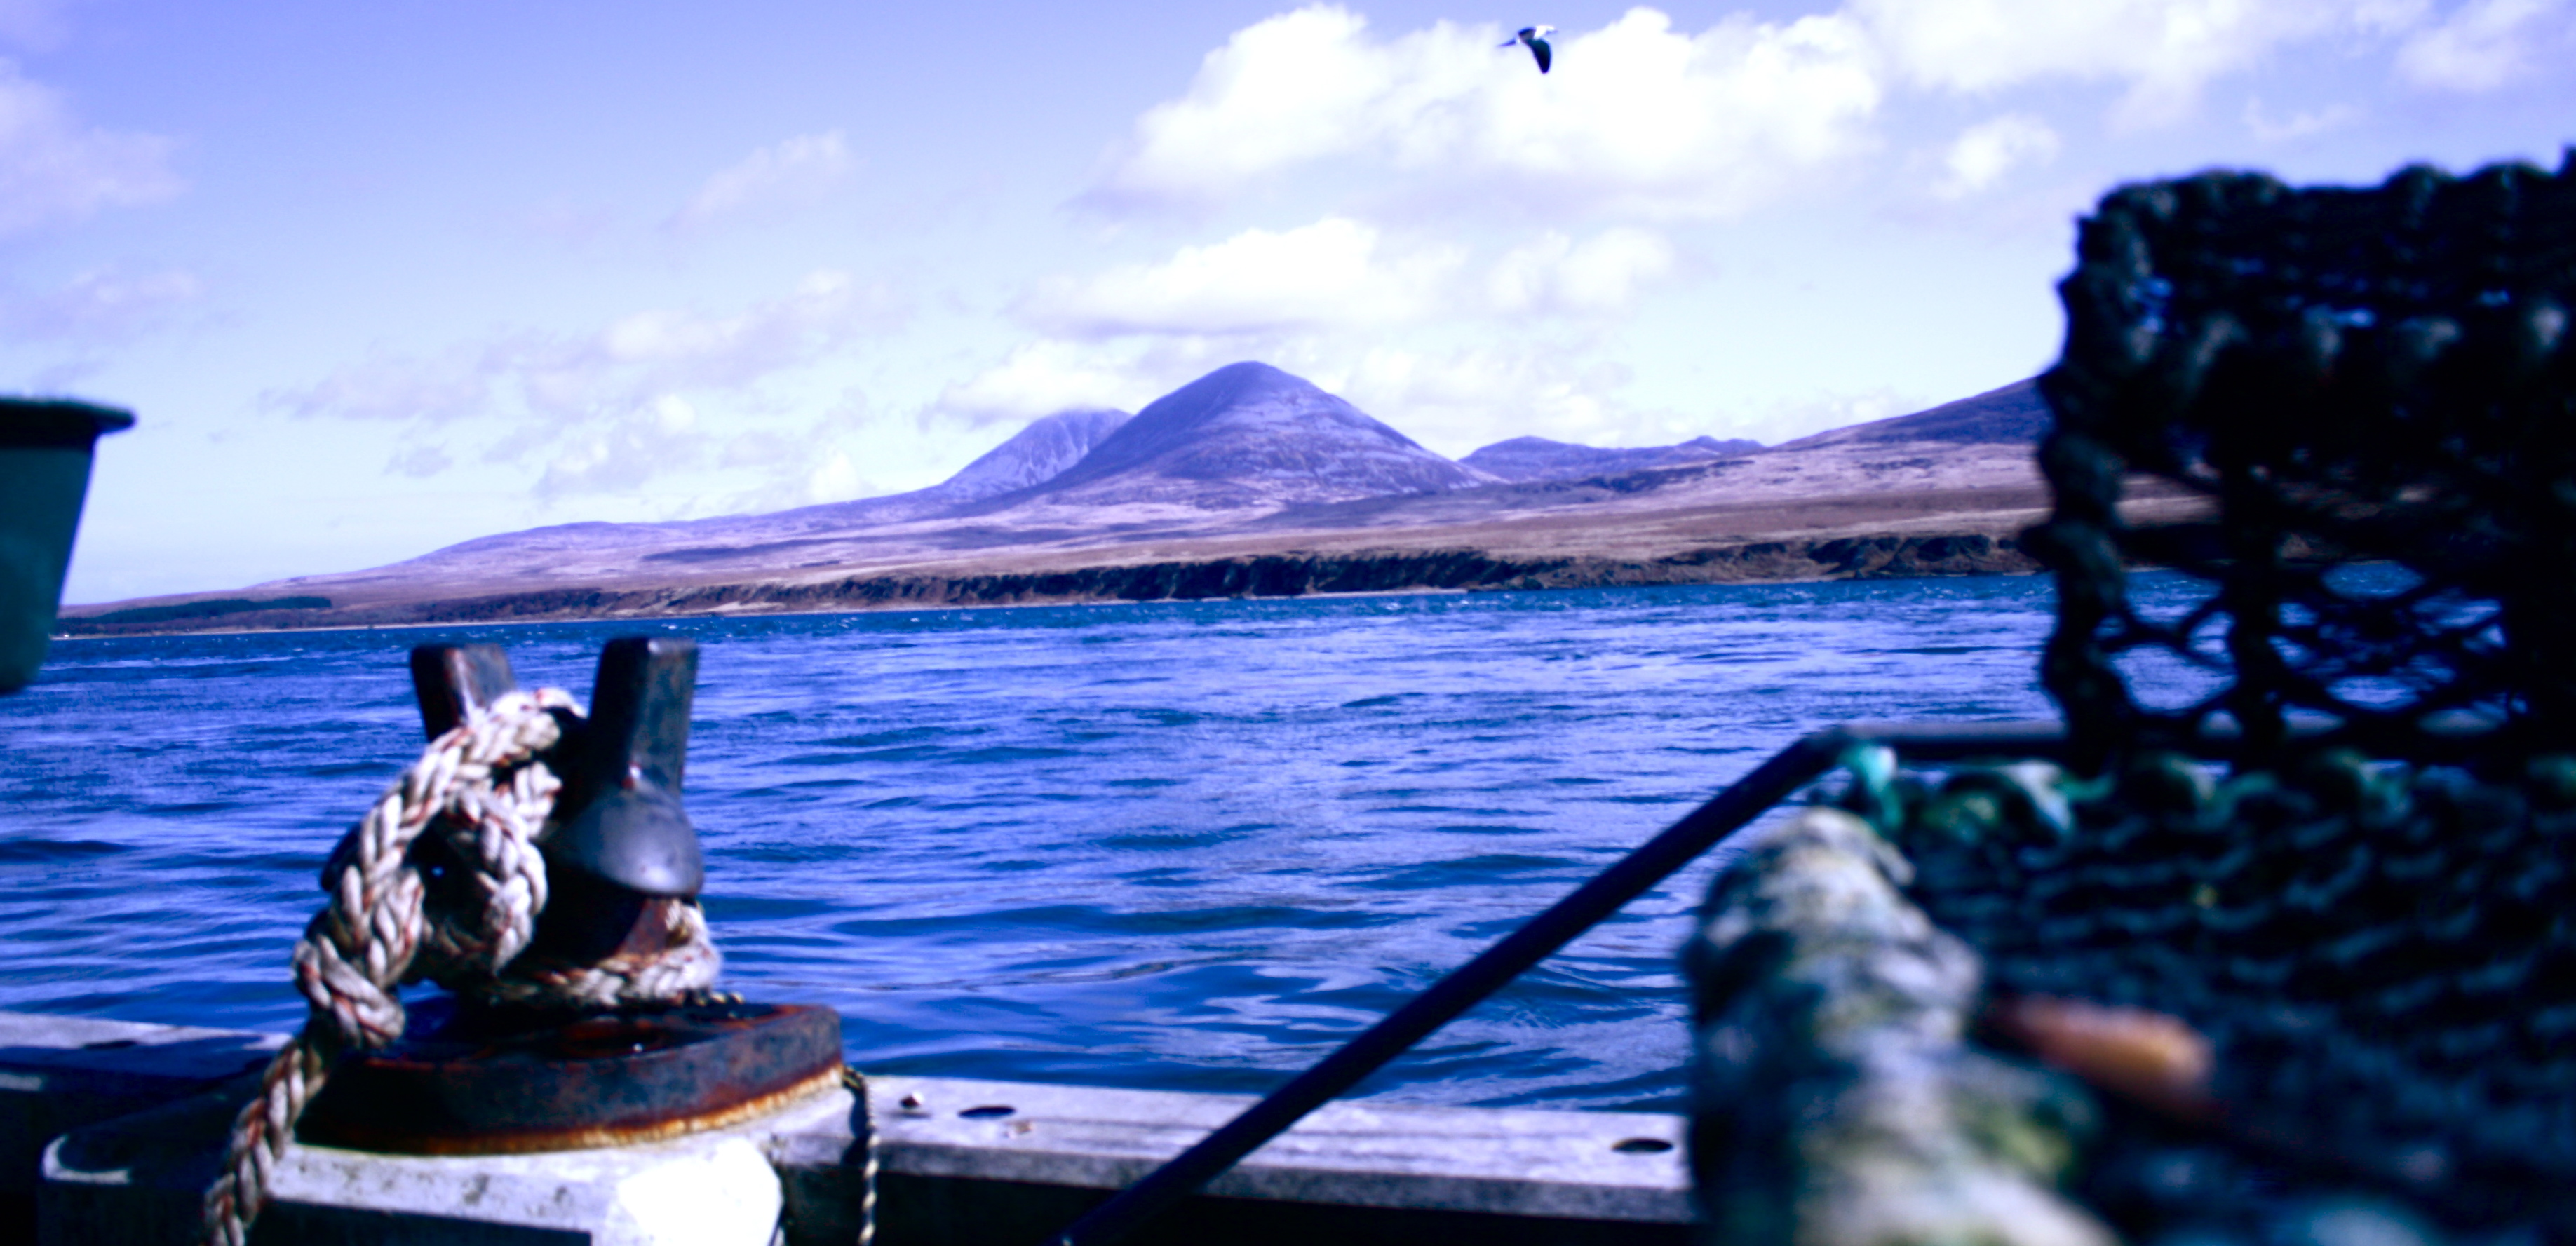 On the seabed between the islands Islay and Jura the ten tidal devices are planned to be placed.